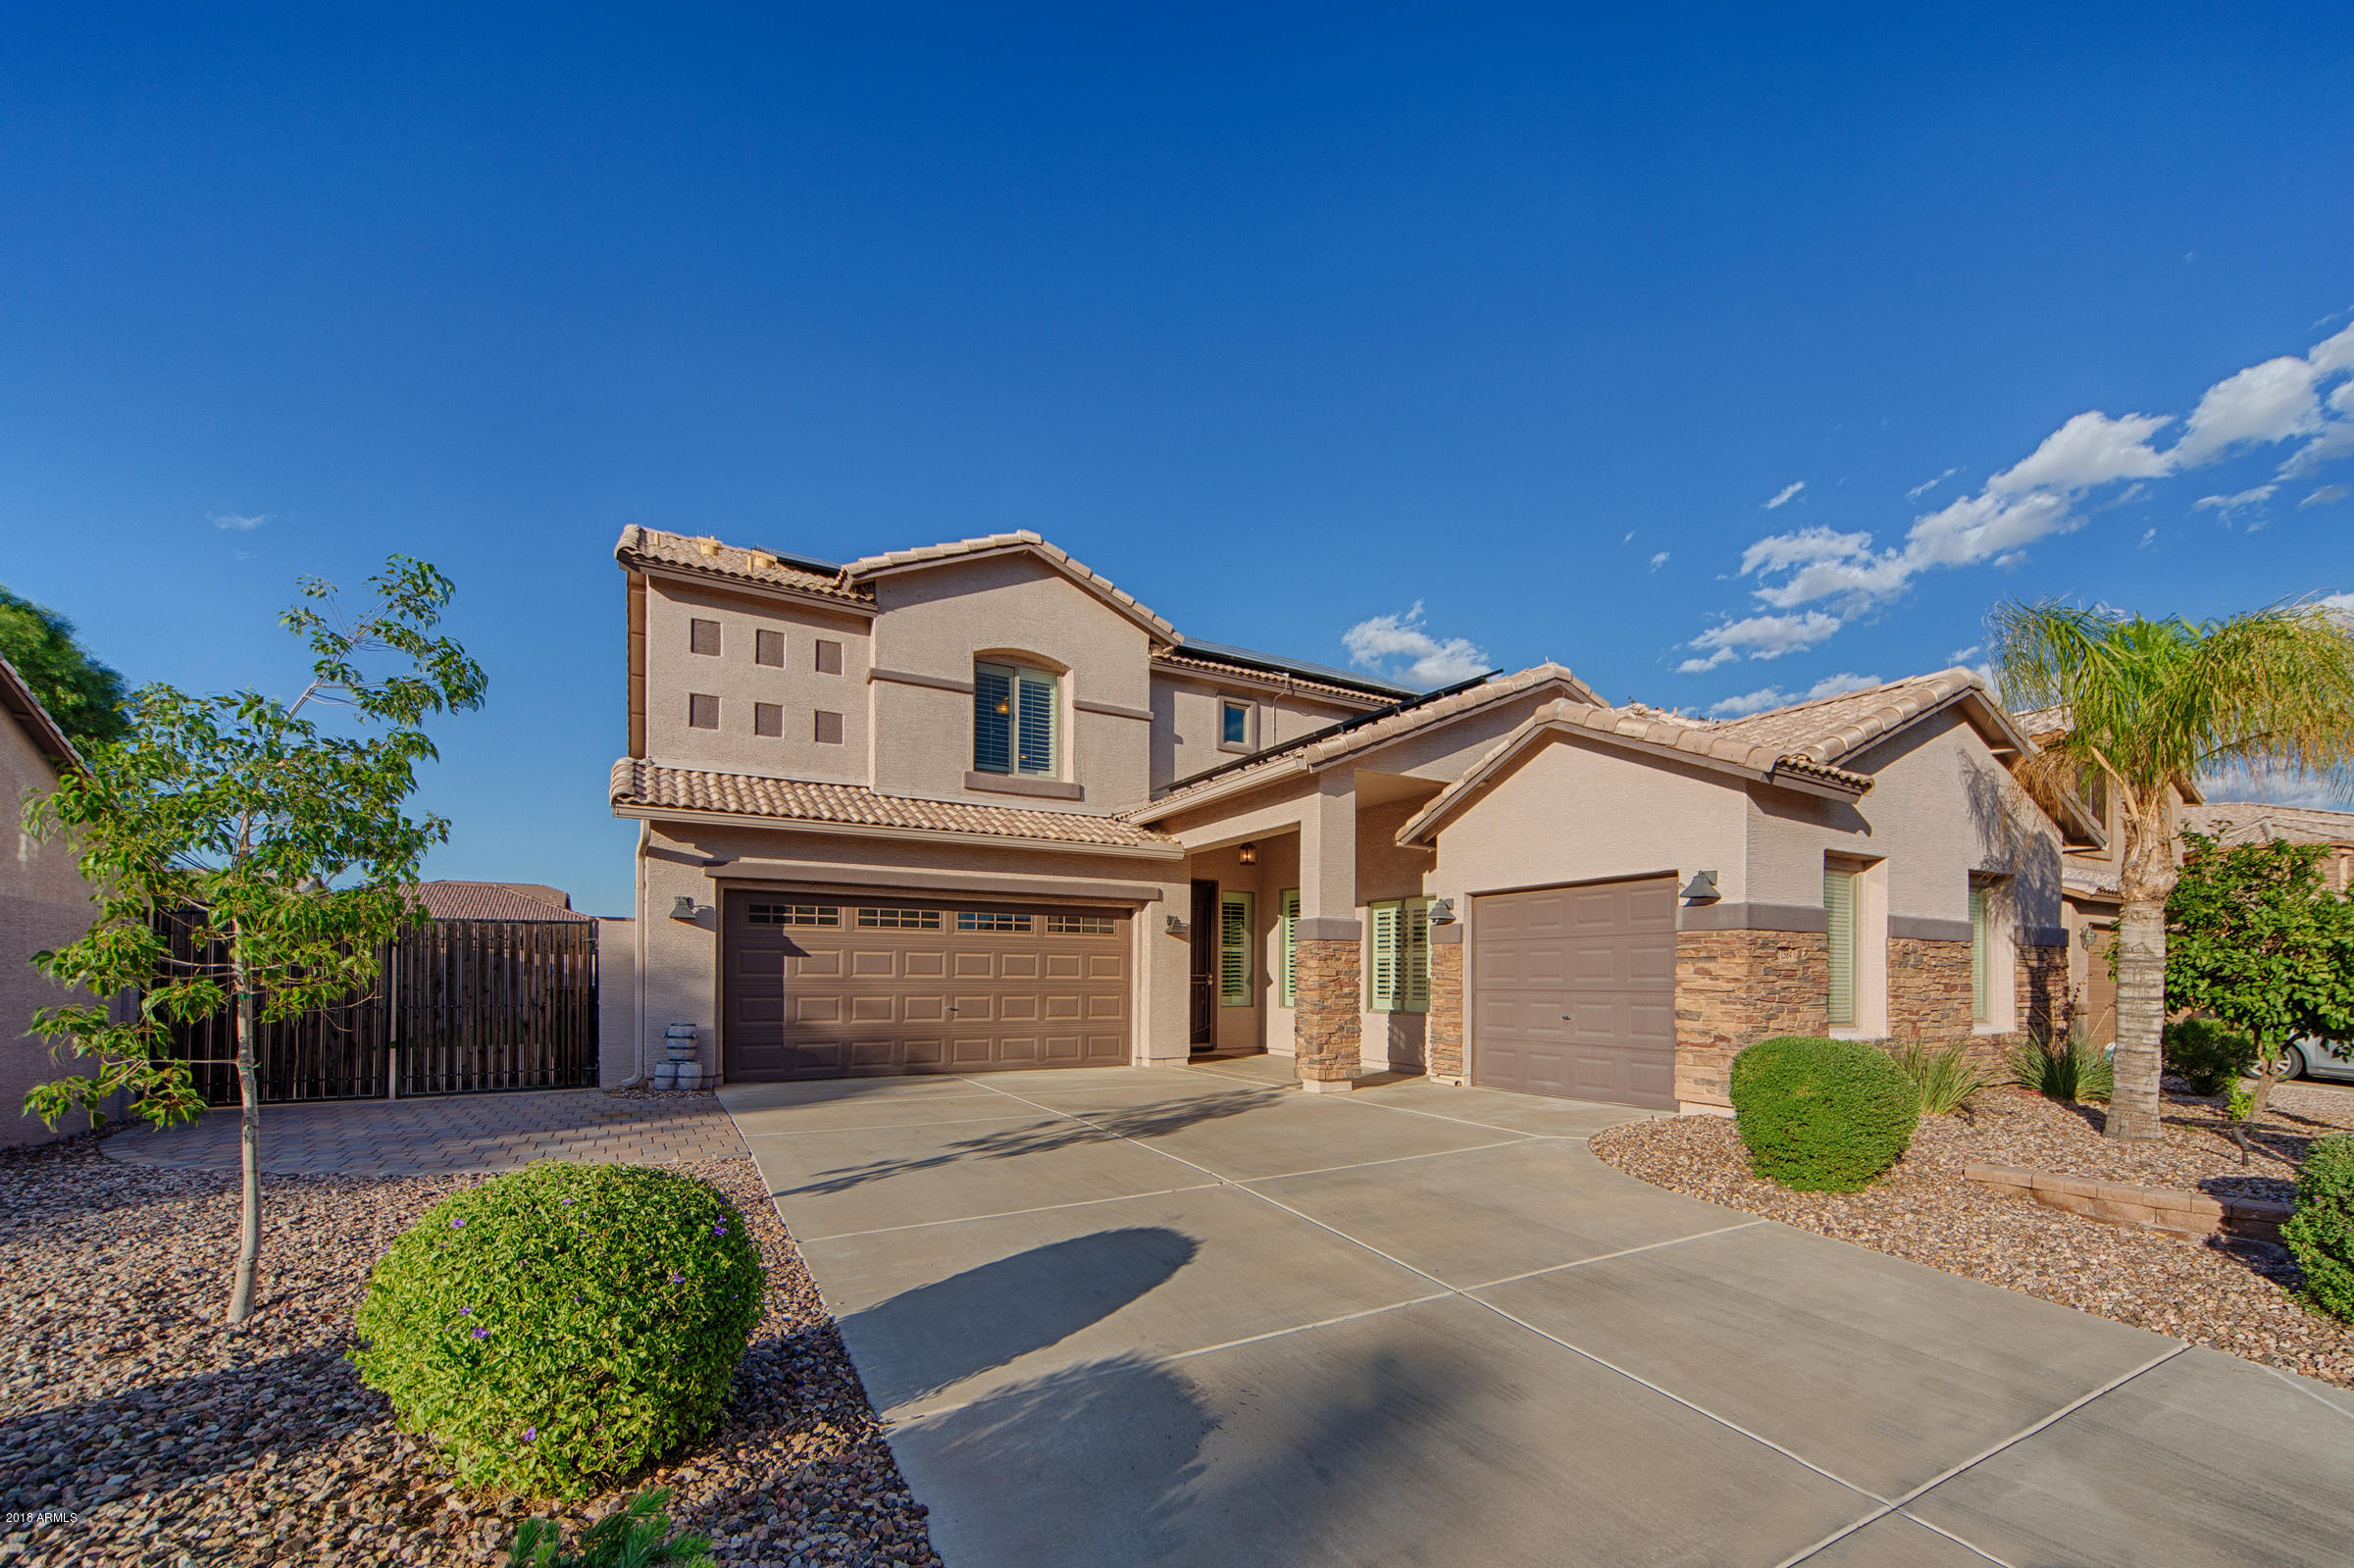 Photo for 1584 E Racine Drive, Casa Grande, AZ 85122 (MLS # 5841166)